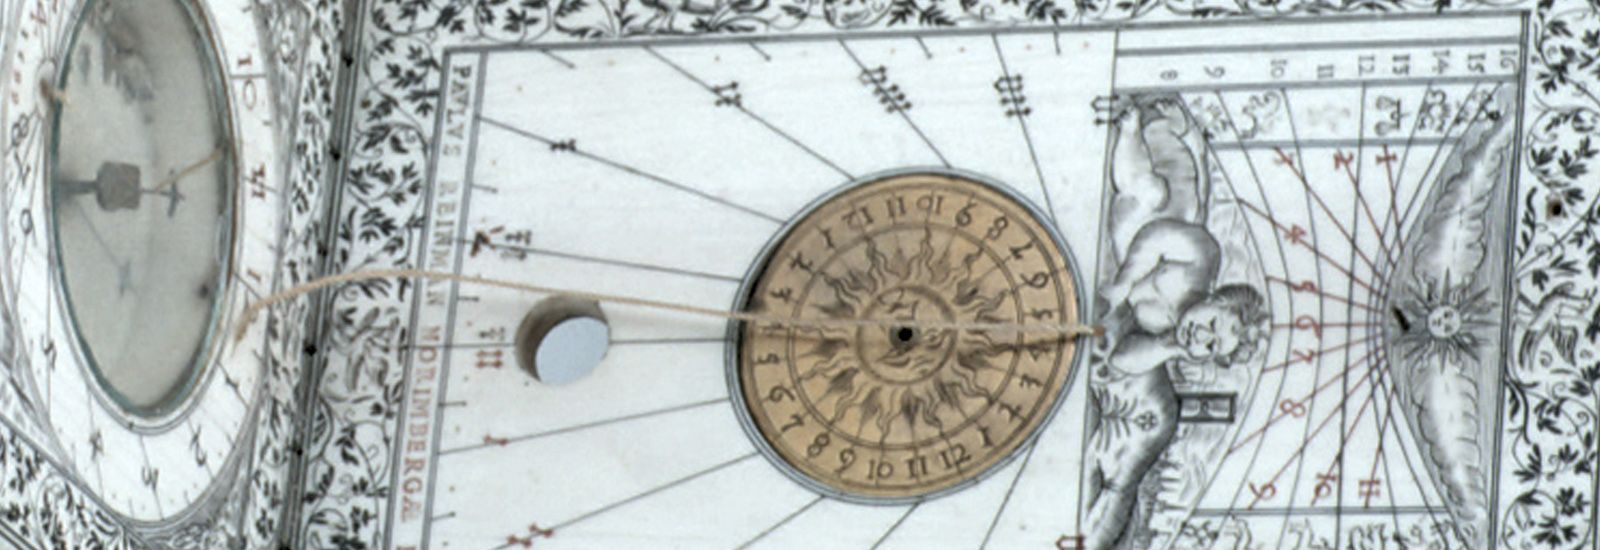 Detail of a diptych sundial made by Paul Reinmann in 1599